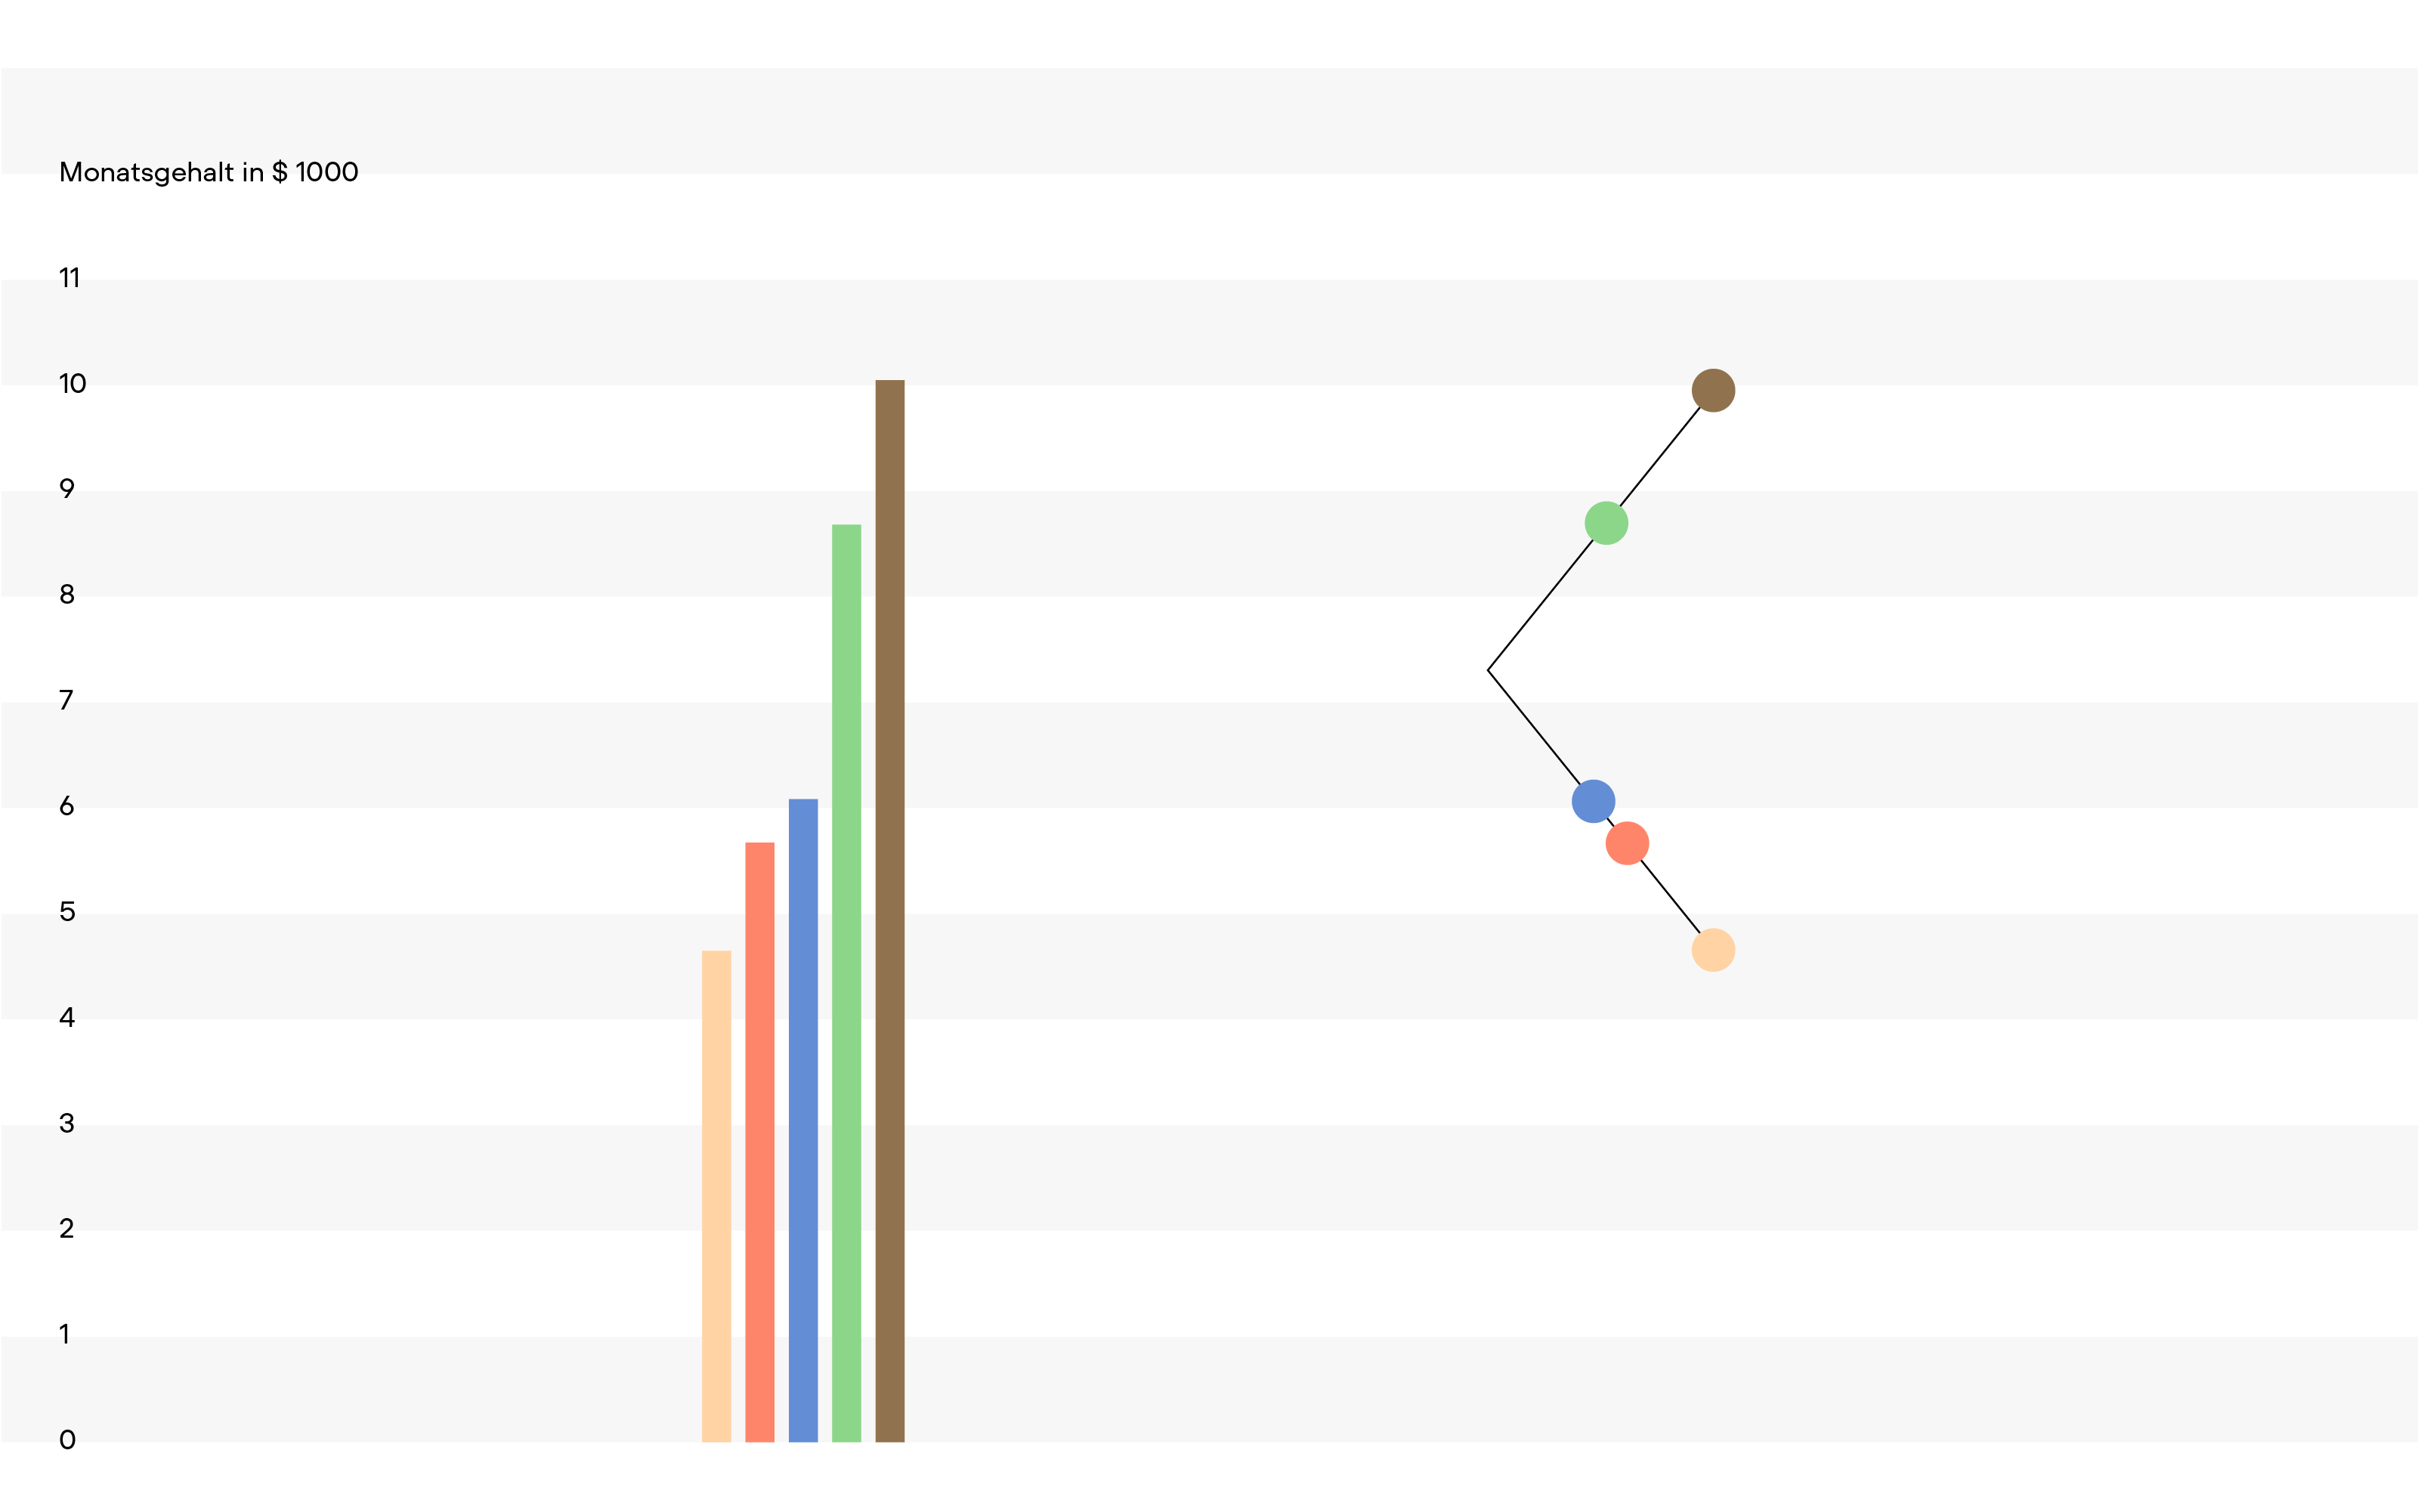 superdot scissor chart compared to conventional bar chart